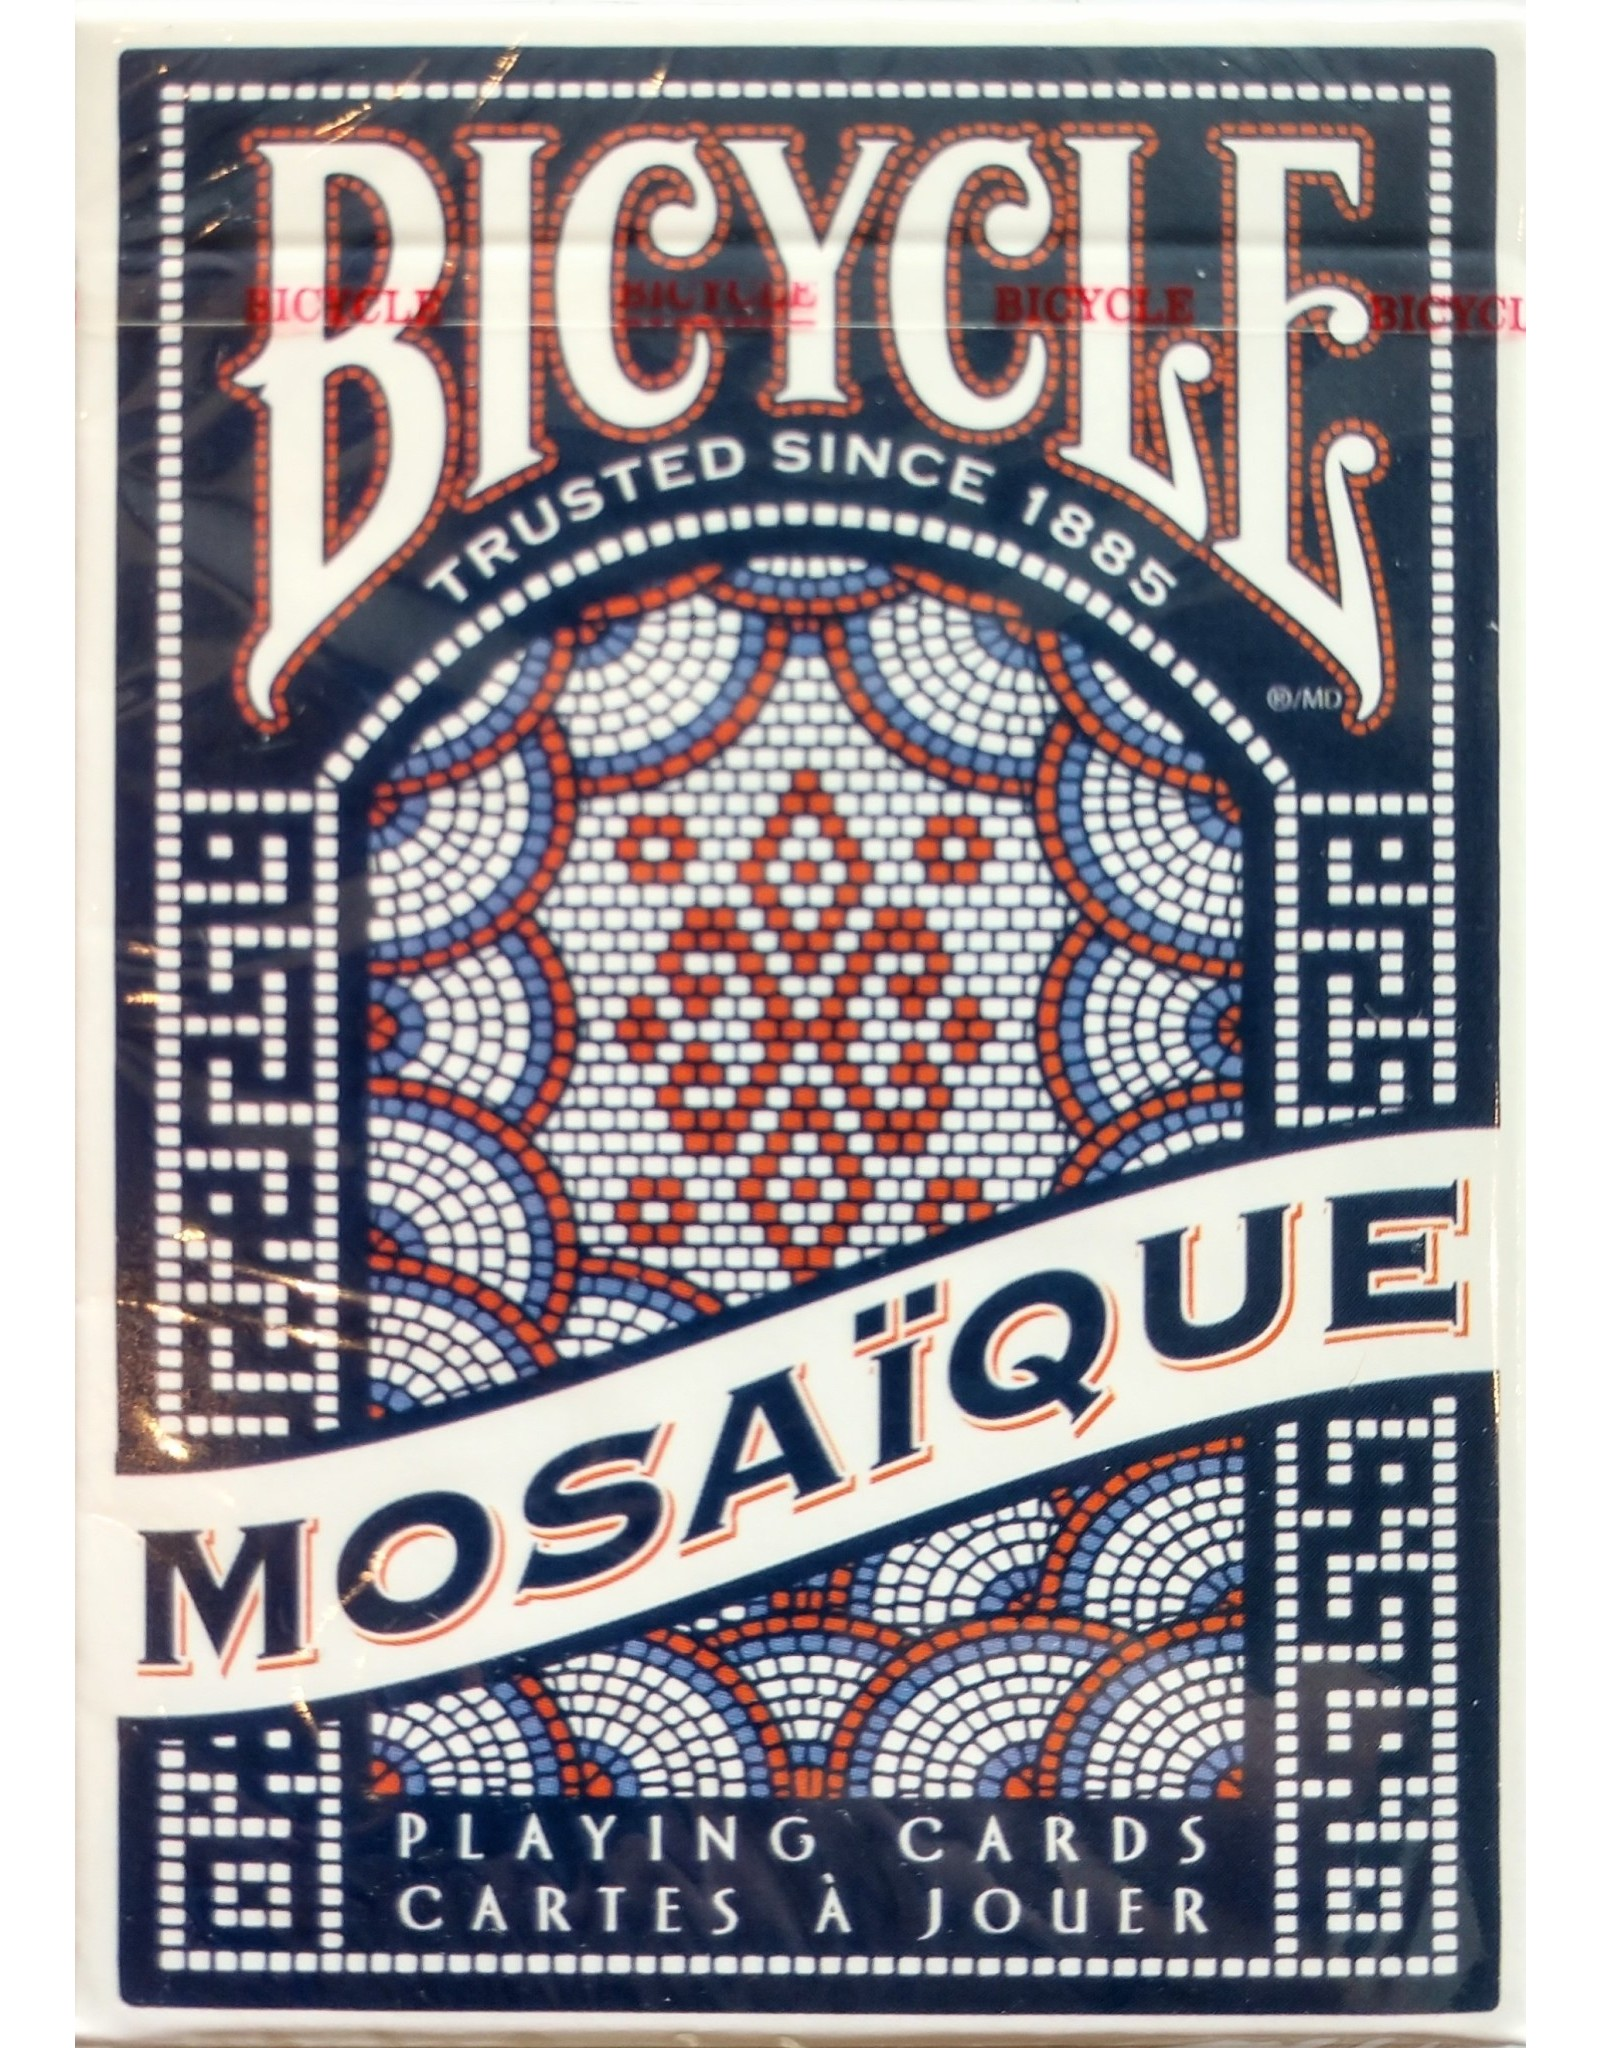 Bicycle Playing Cards Mosaique Playing Cards